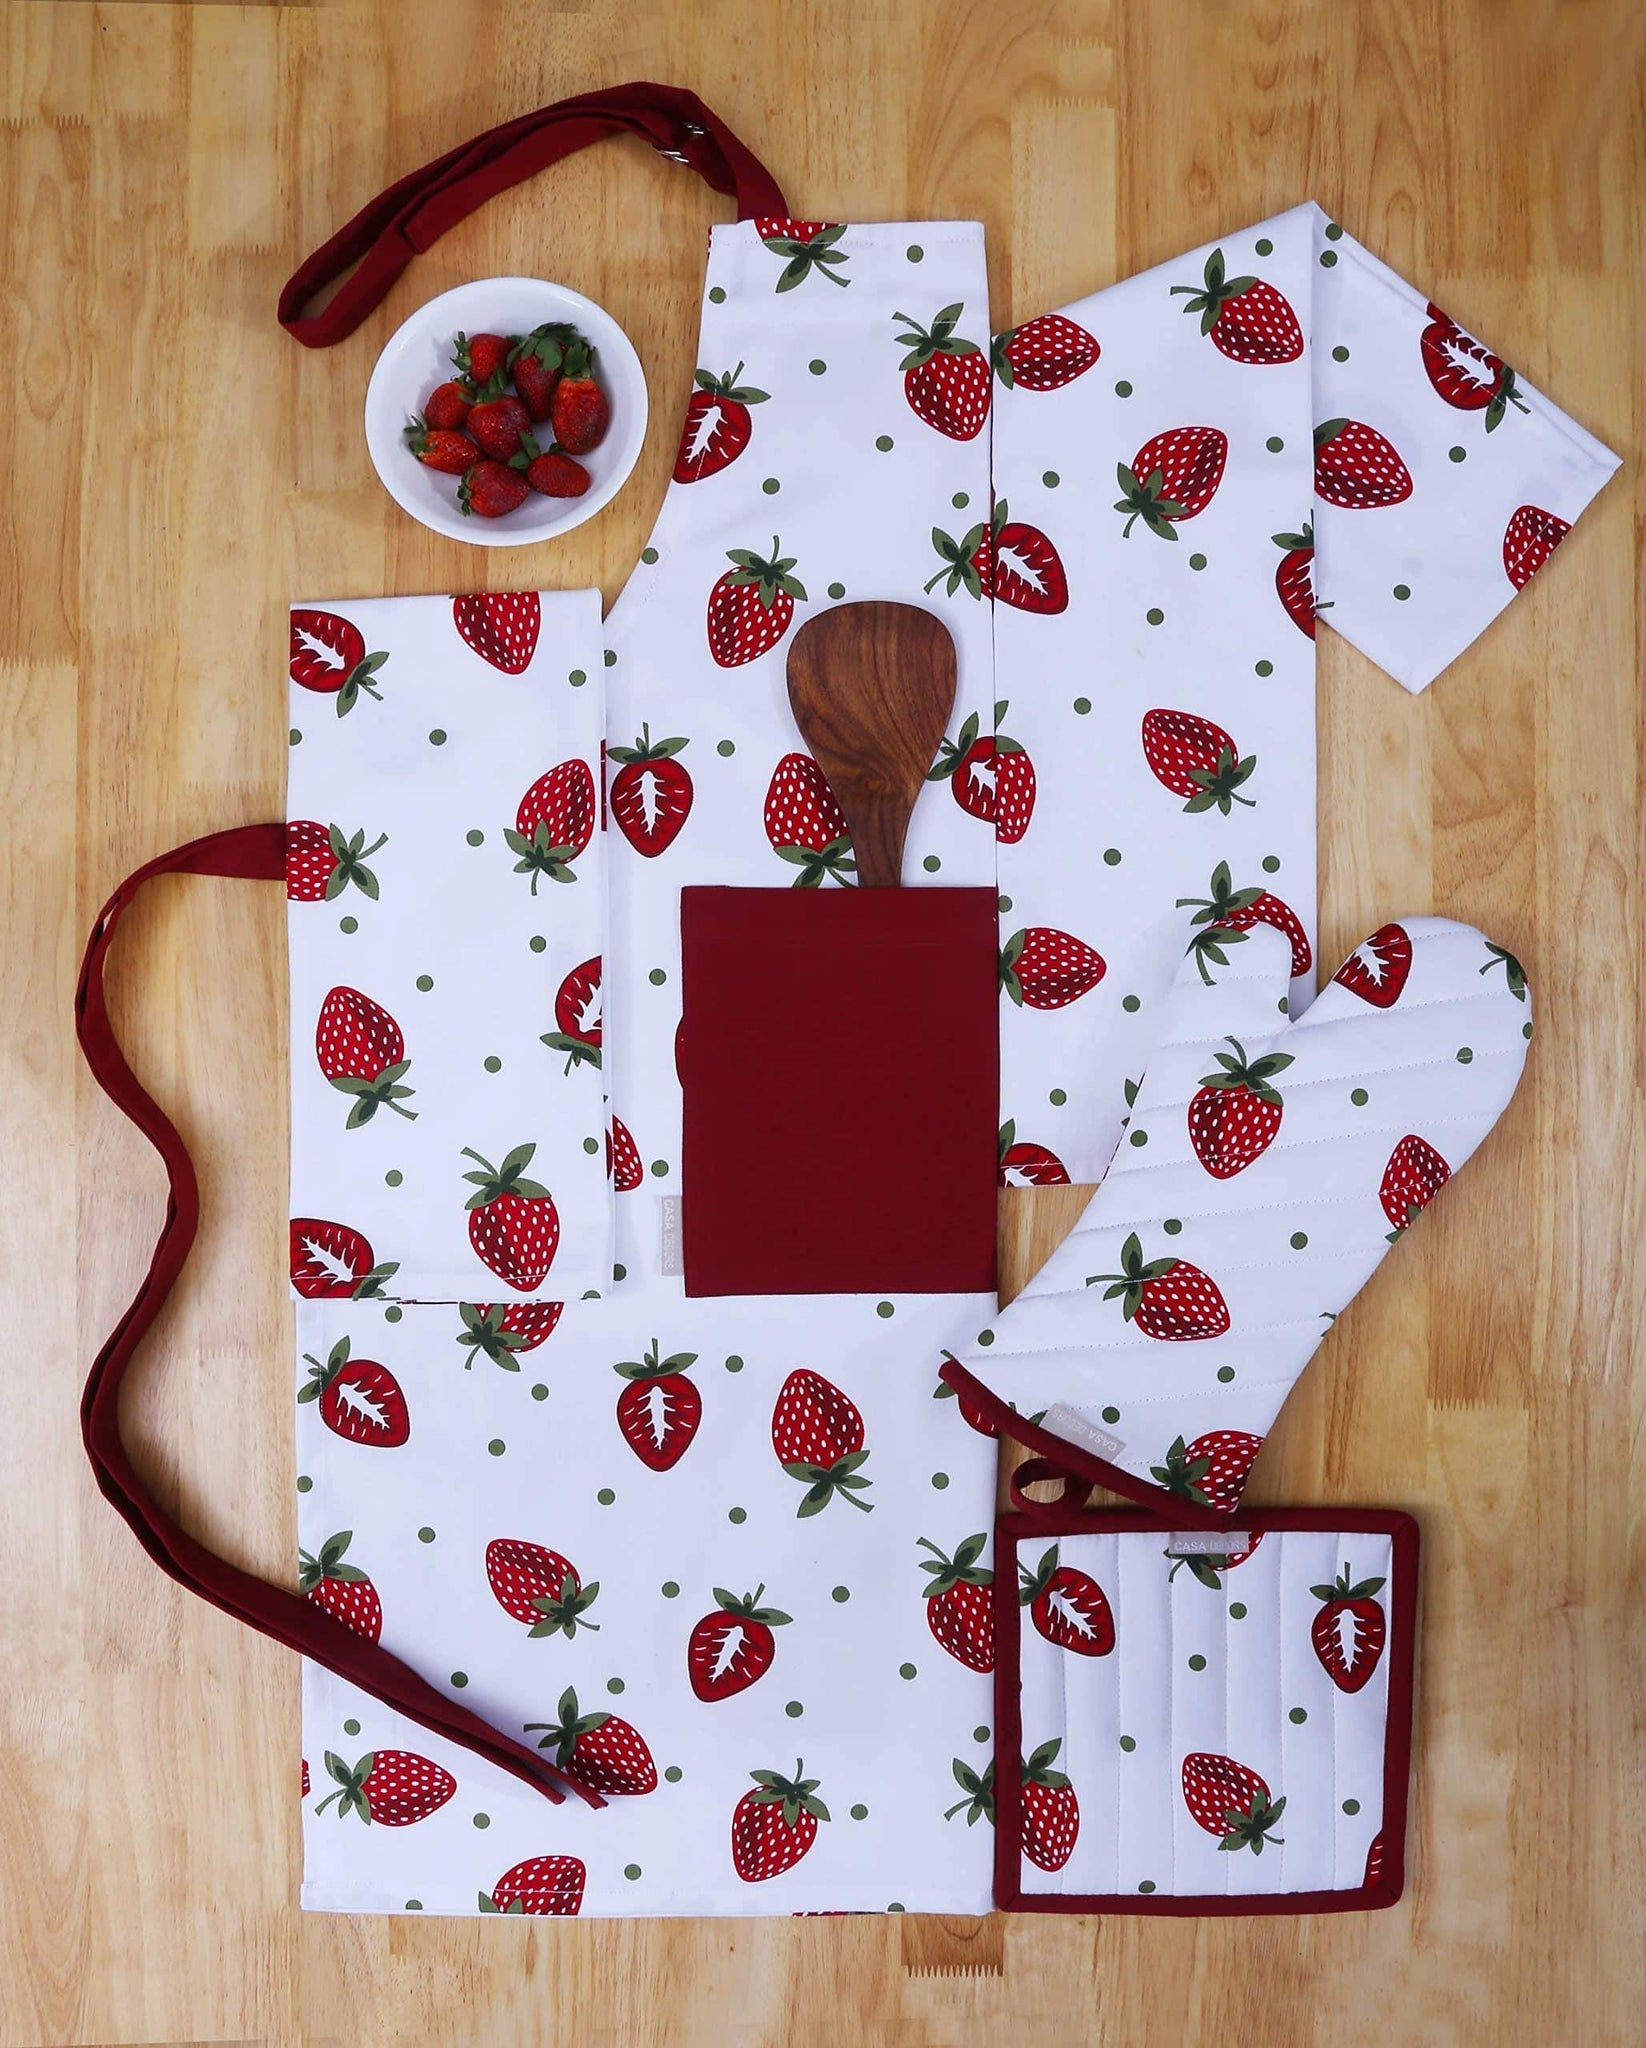 CASA DECORS Set of Apron, Oven Mitt, Pot Holder, Pair of Kitchen Towels in a Unique Berry Blast Design, Made of 100% Cotton, Eco-Friendly & Safe, Value Pack and Ideal Gift Set, Kitchen Linen Set